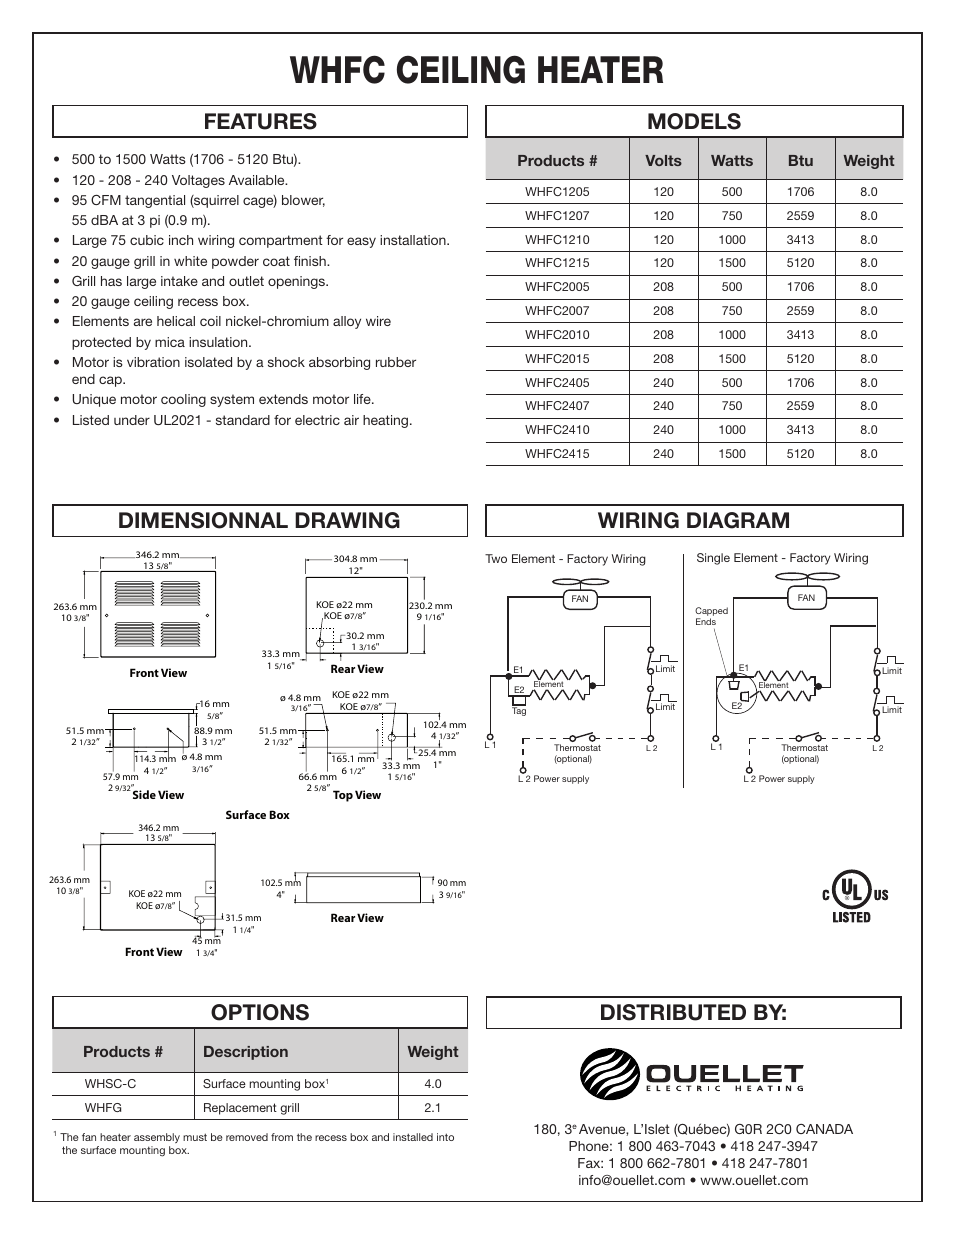 Whfc ceiling heater, Distributed by: features, Models options wiring diagram  | Dimensionnal drawing